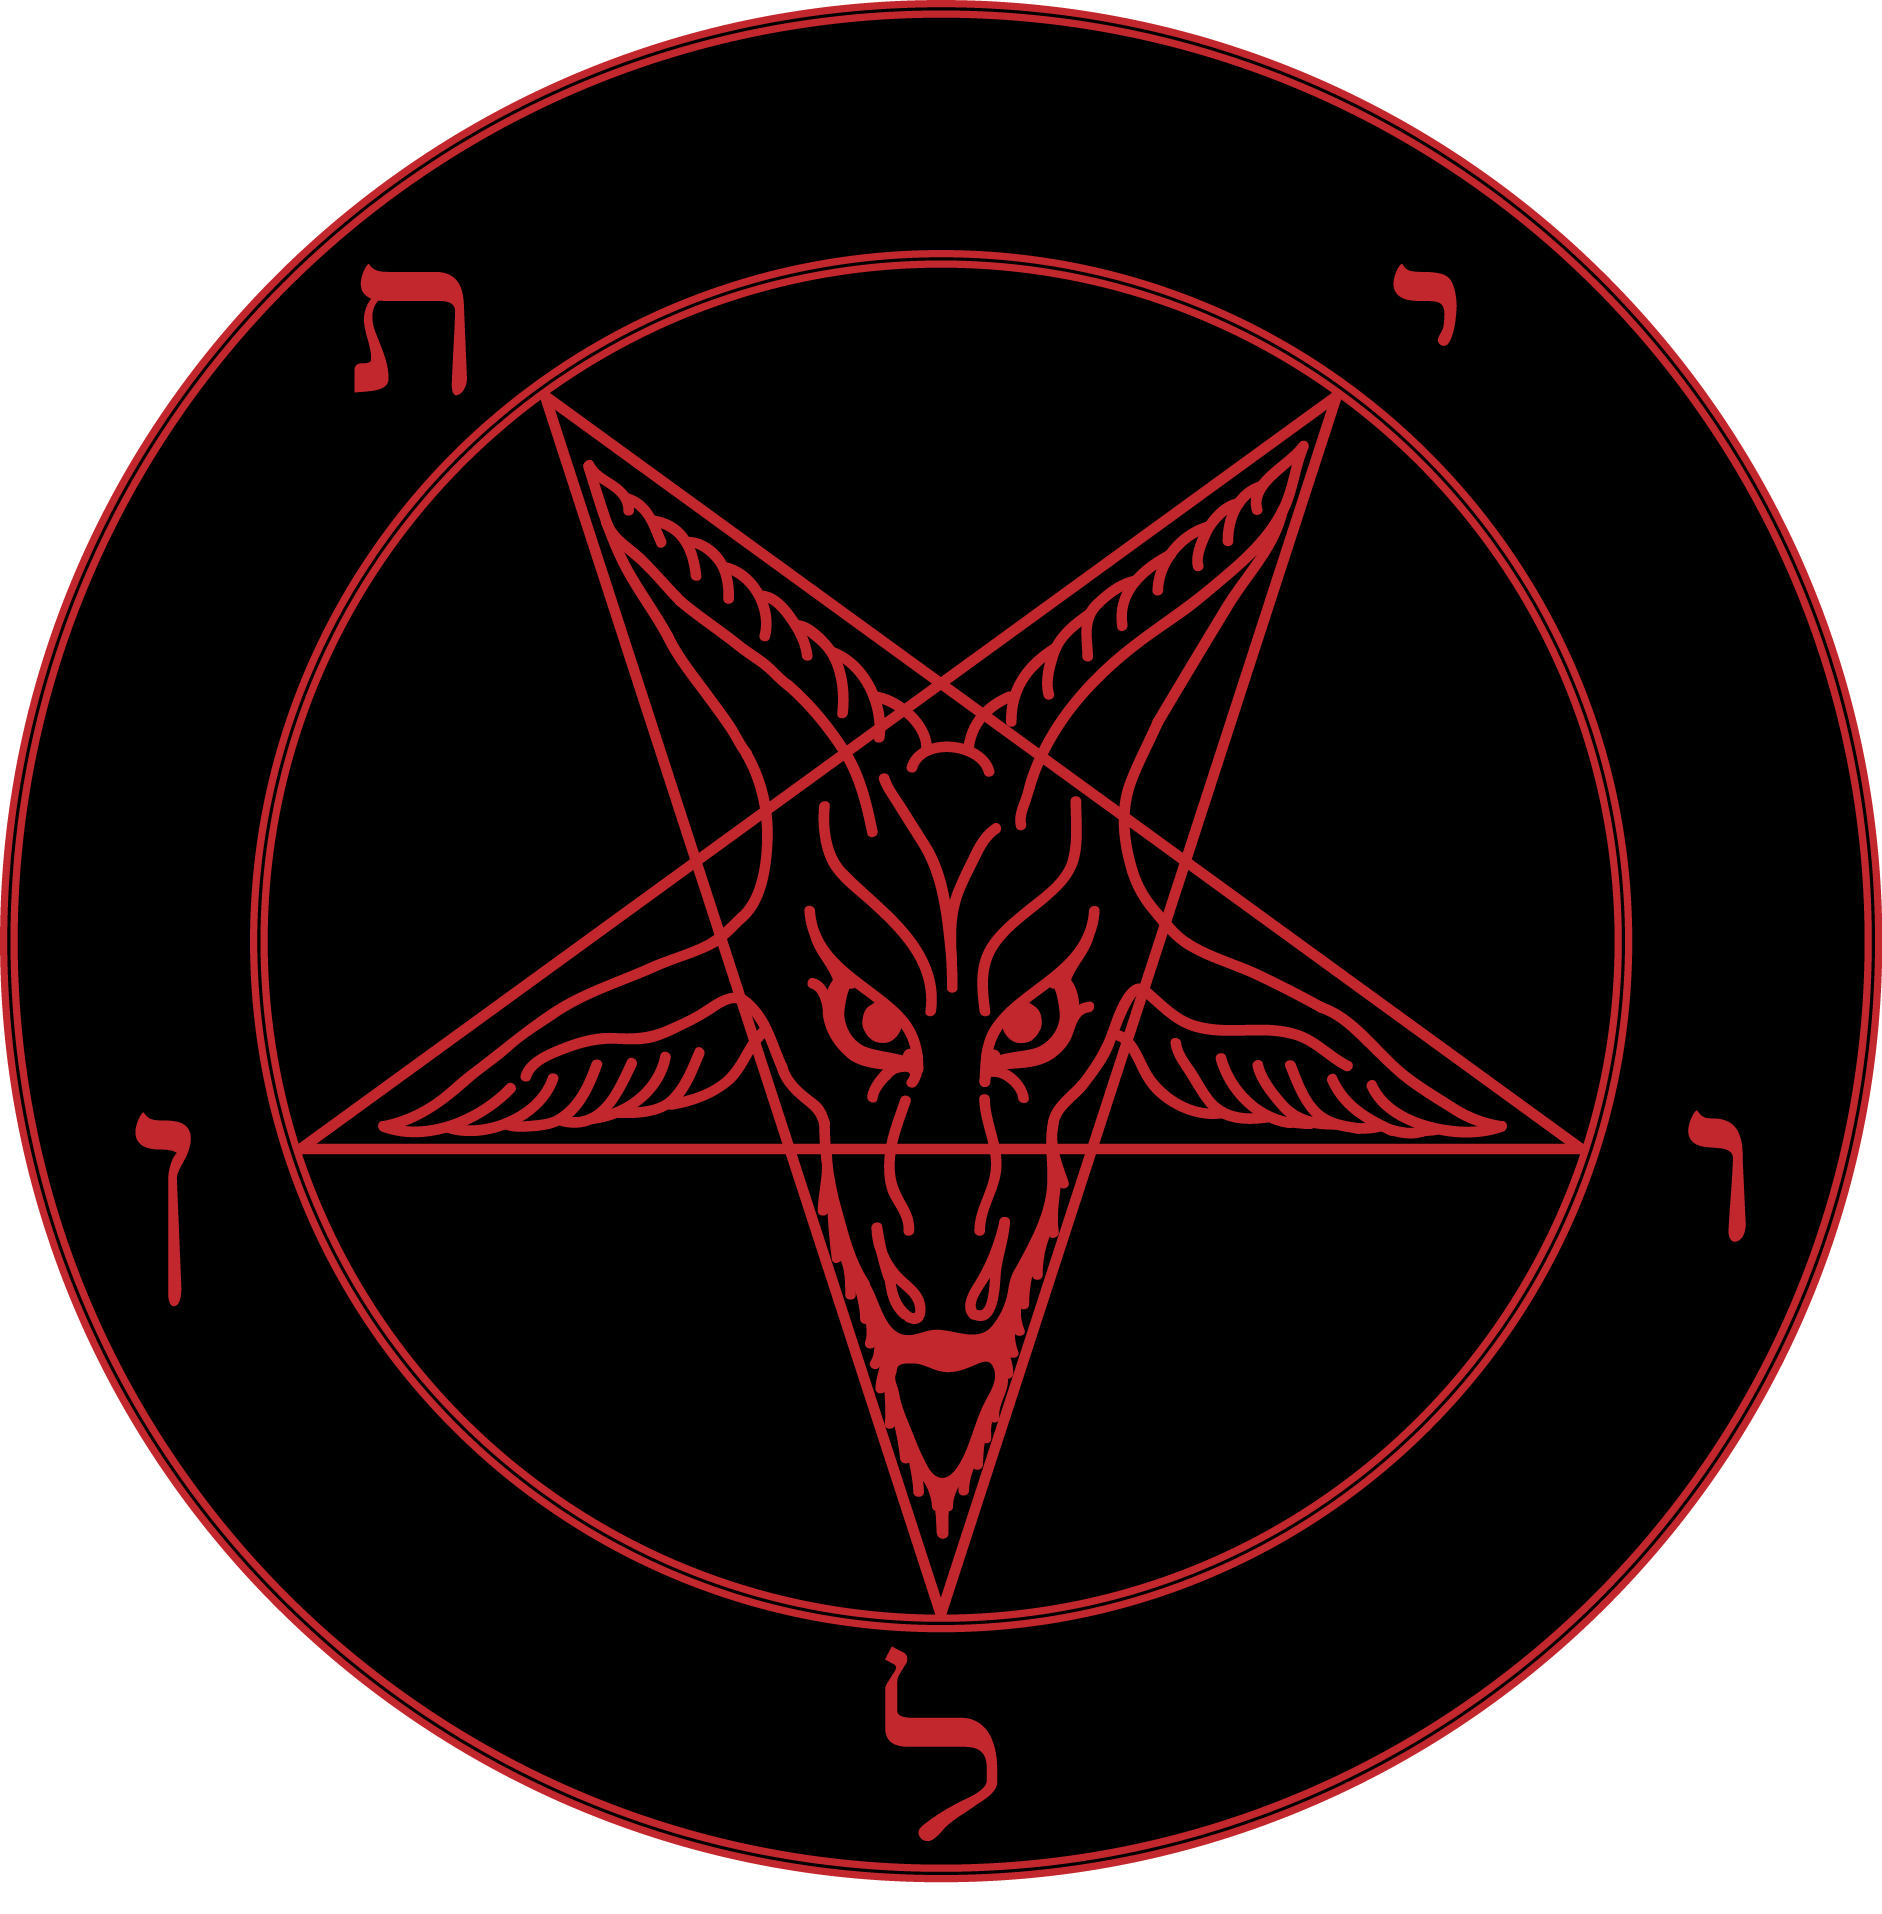 Sigil of Lucifer Wallpaper 68 images  Get the Best HD